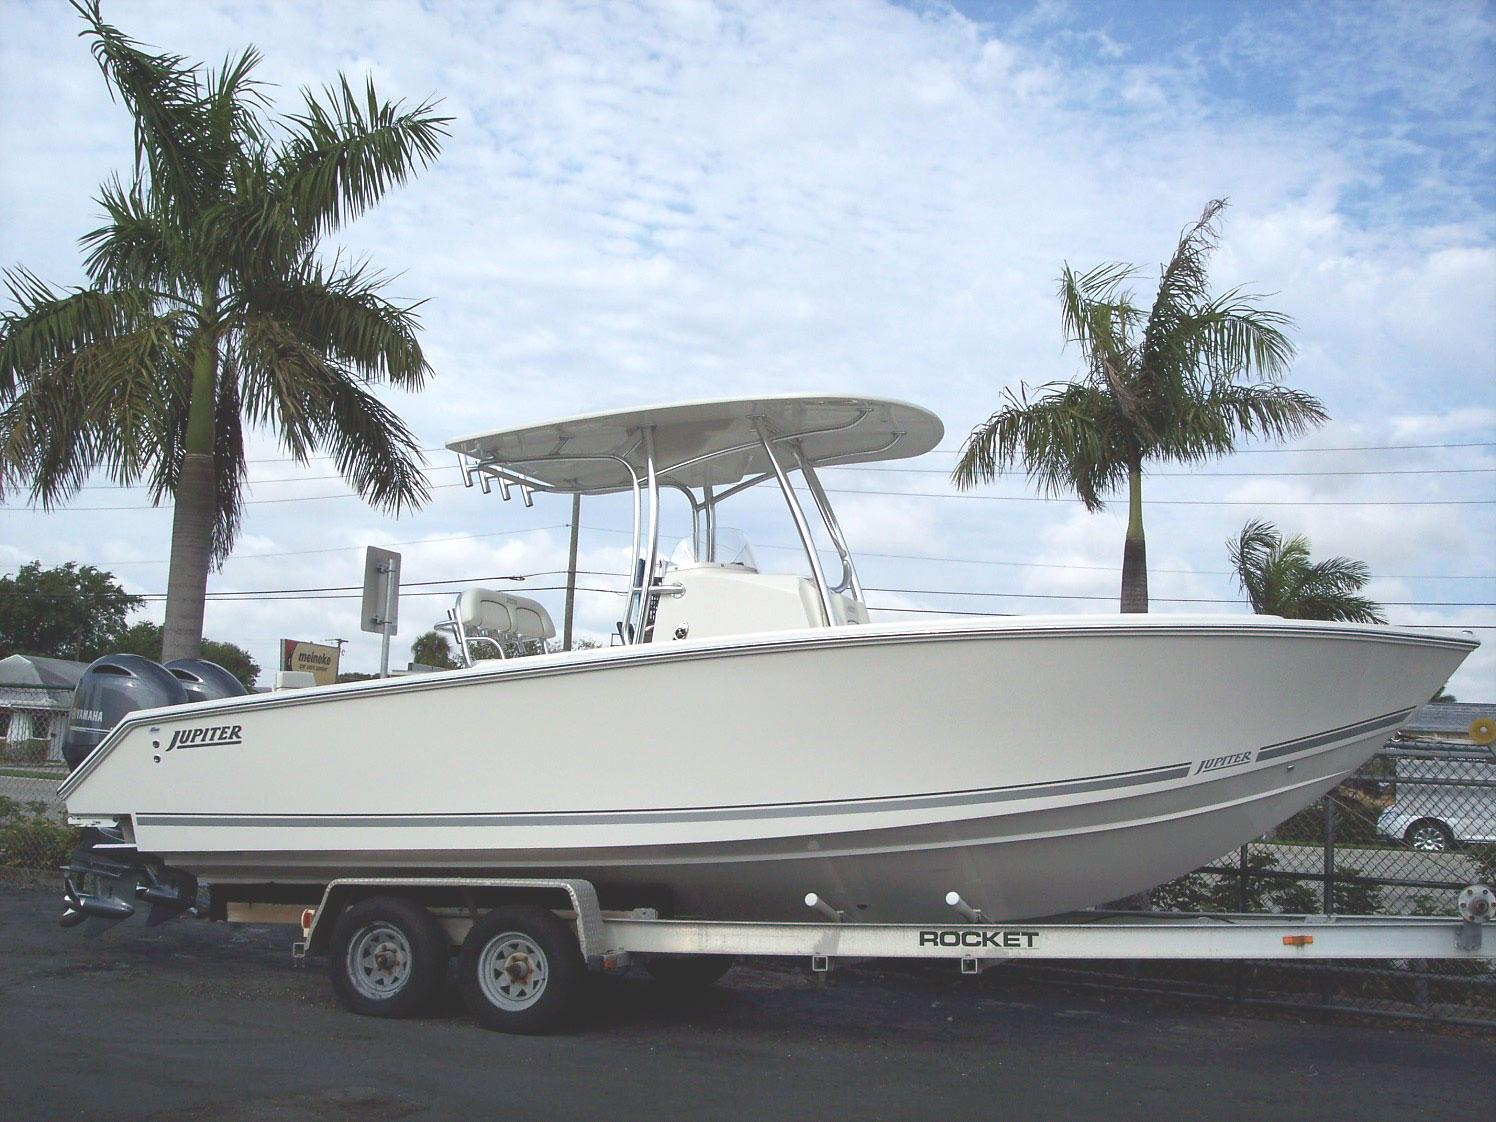 2018 Jupiter 26 Fs Power New And Used Boats For Sale